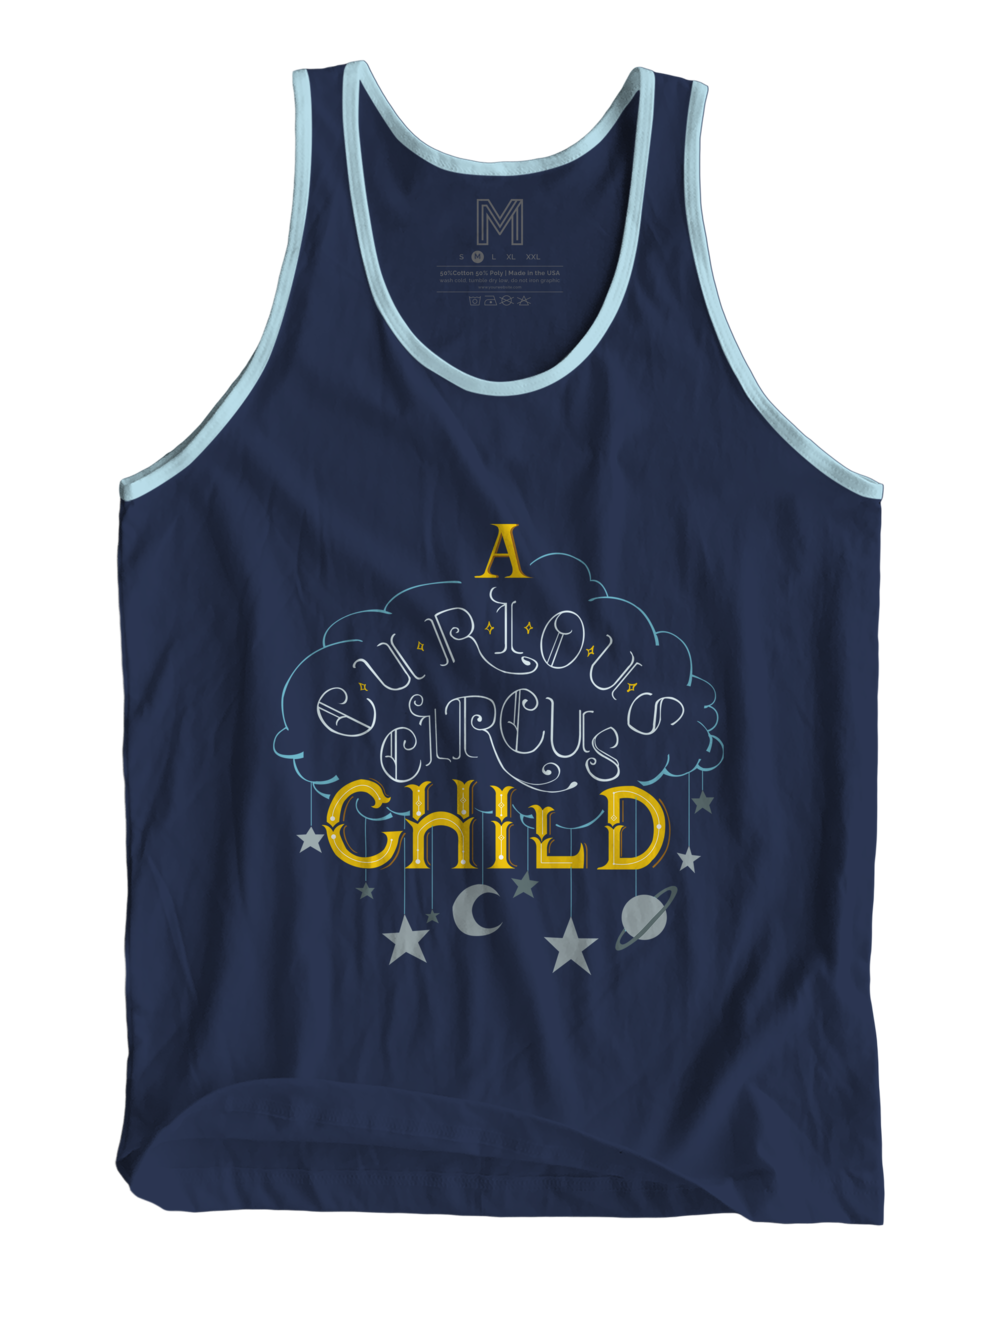 Circus child tank top.png